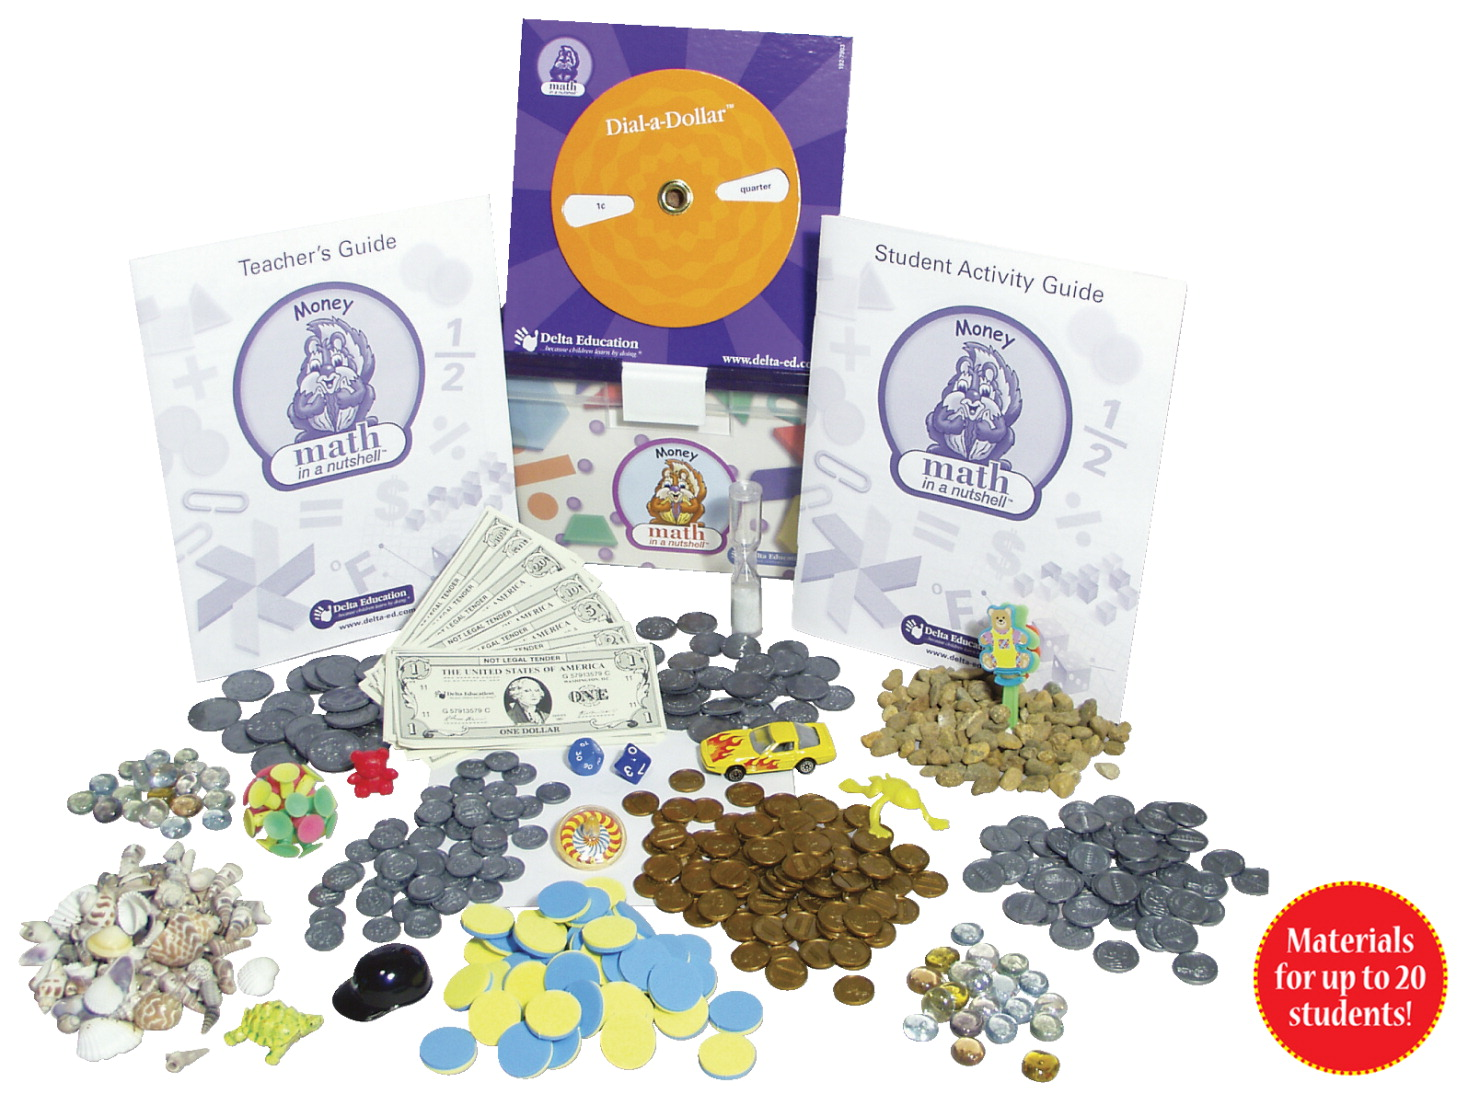 Delta Math In A Nutshell Money Class Pack, Grades 2 and 3